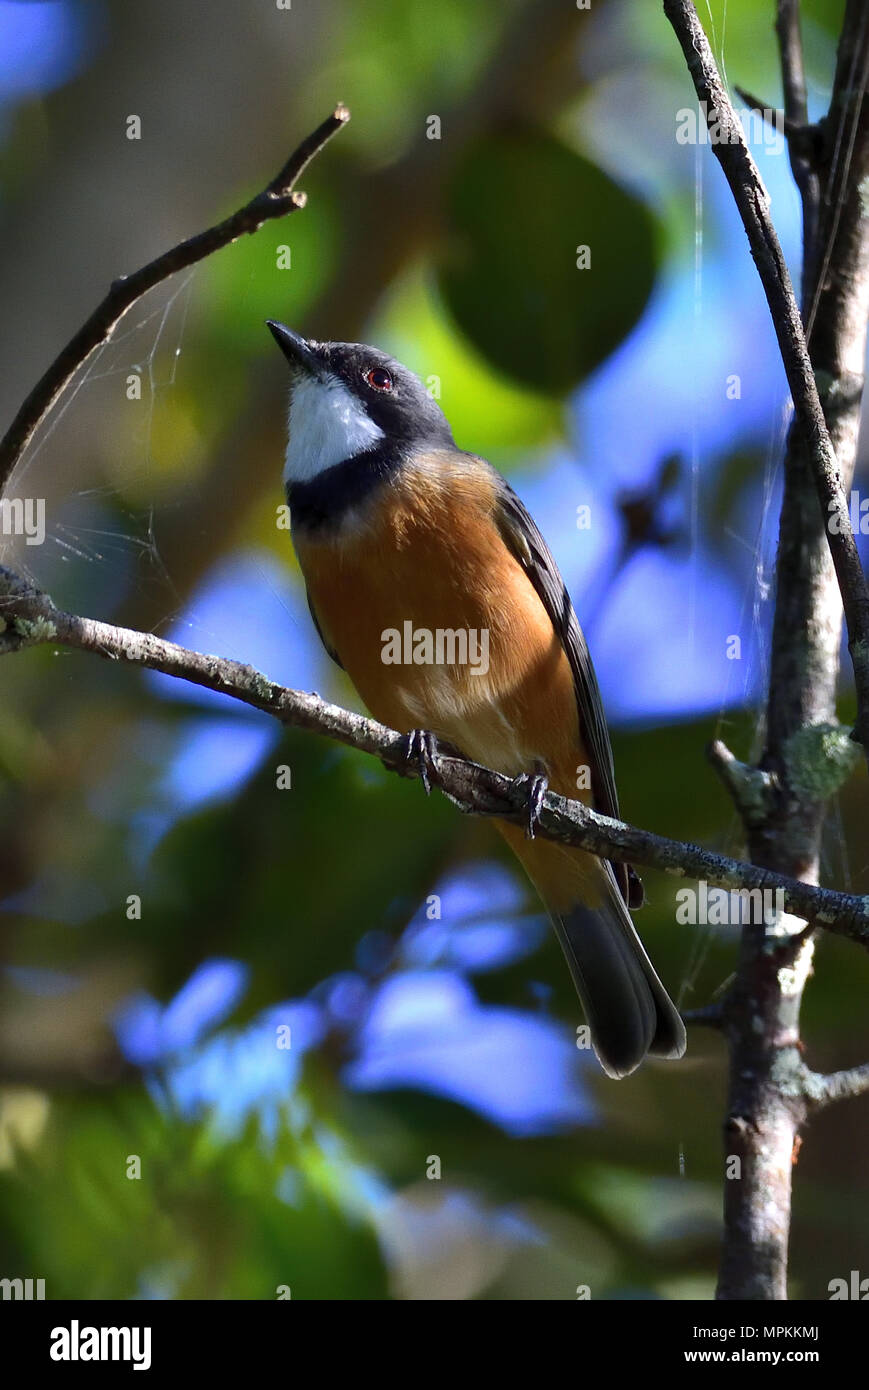 An Australian, Queensland Male Rufous Whistler, Pachycephala rufiventris resting on a Tree branch in thick bush - Stock Image